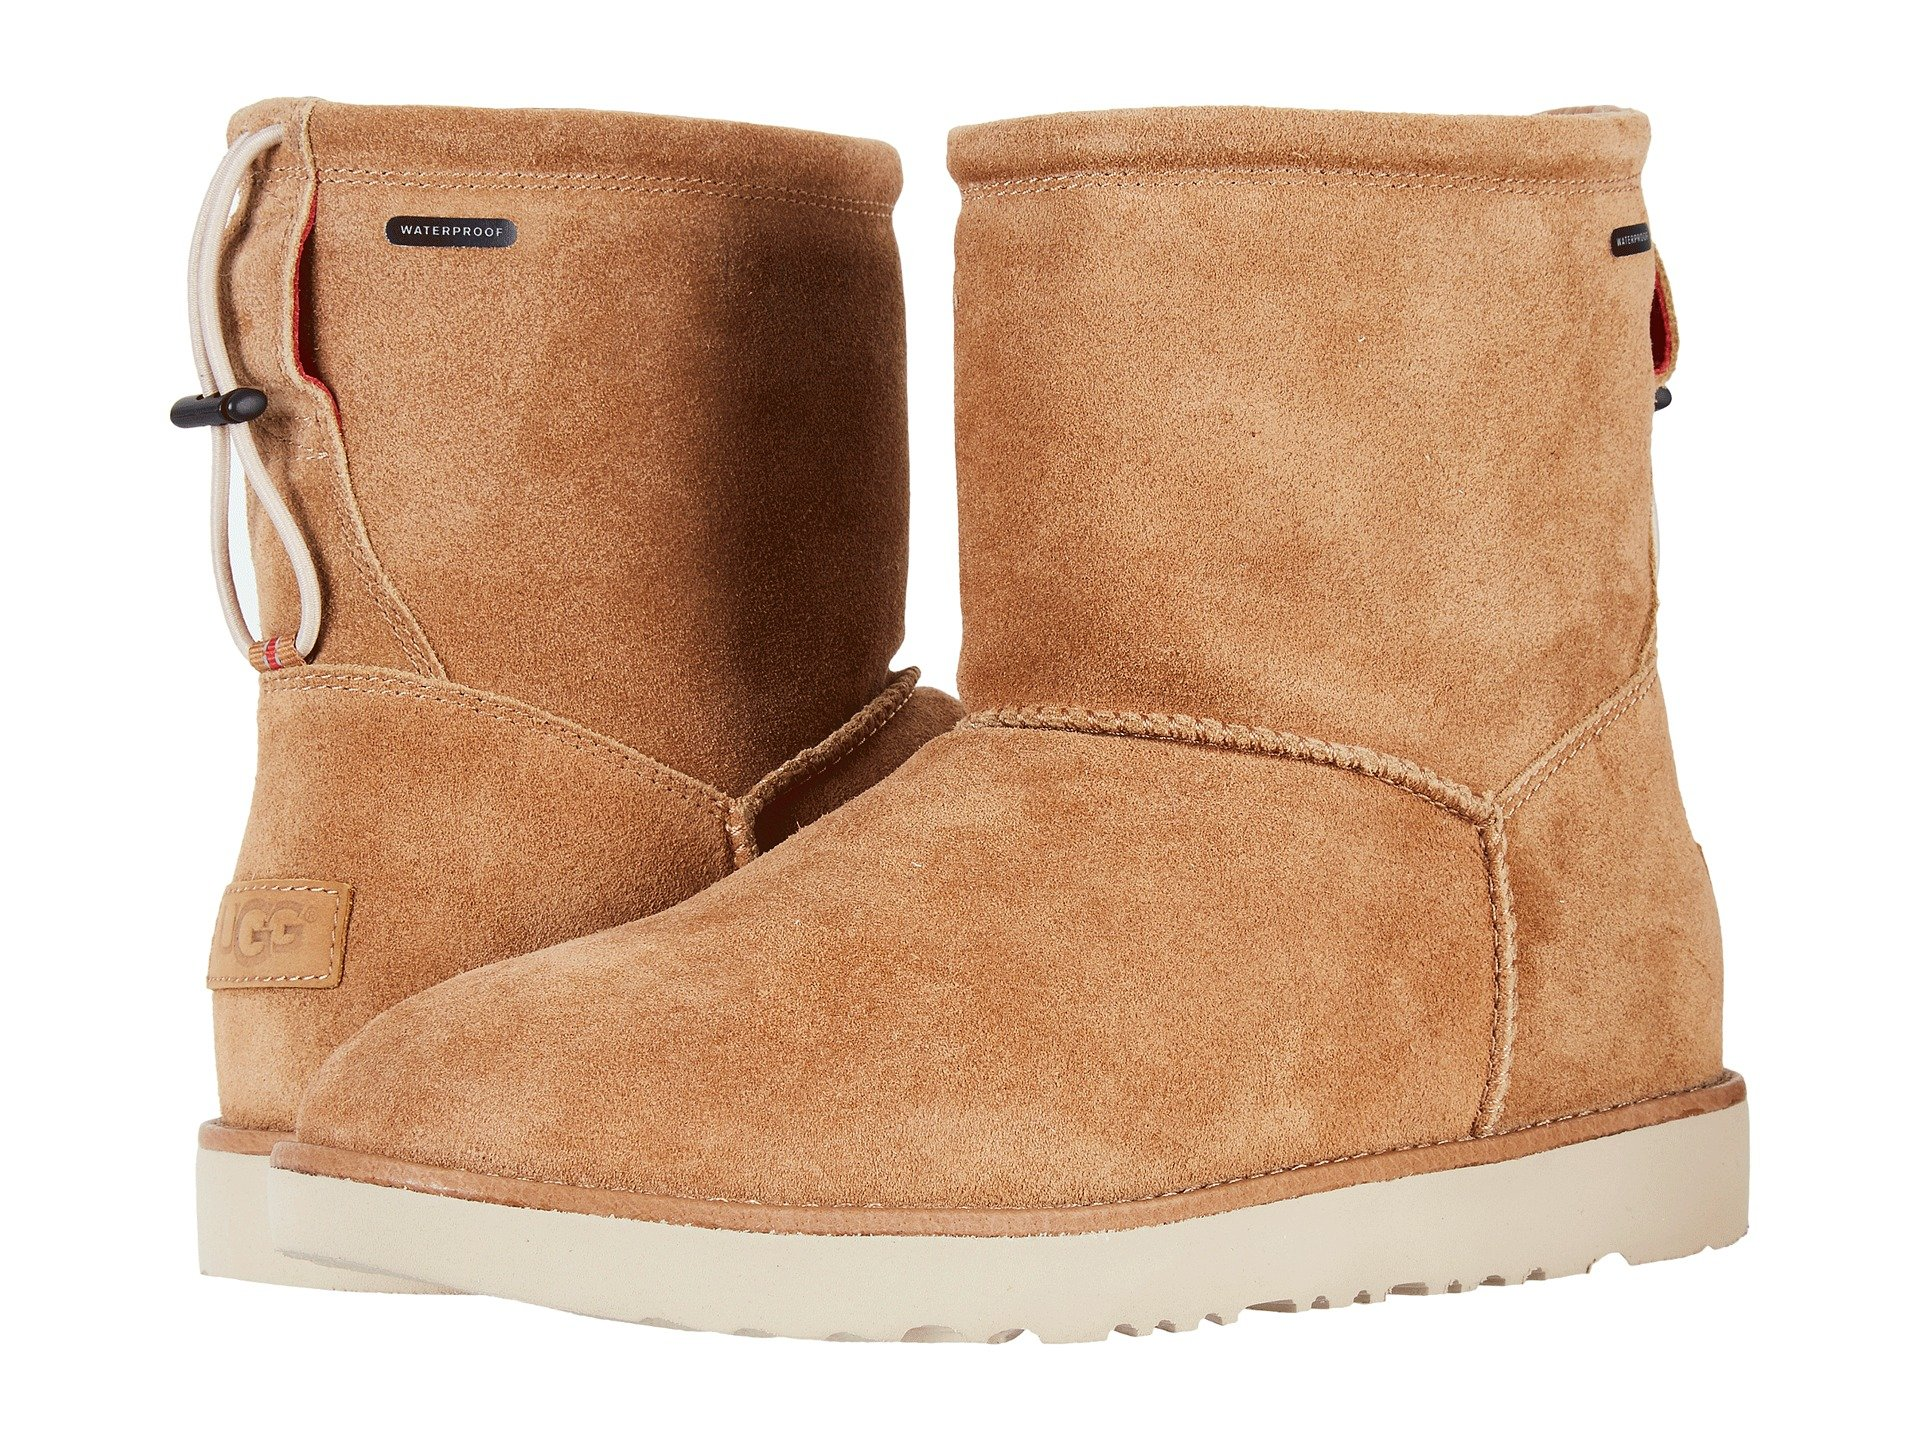 UGG Classic Toggle Waterproof at Zappos.com